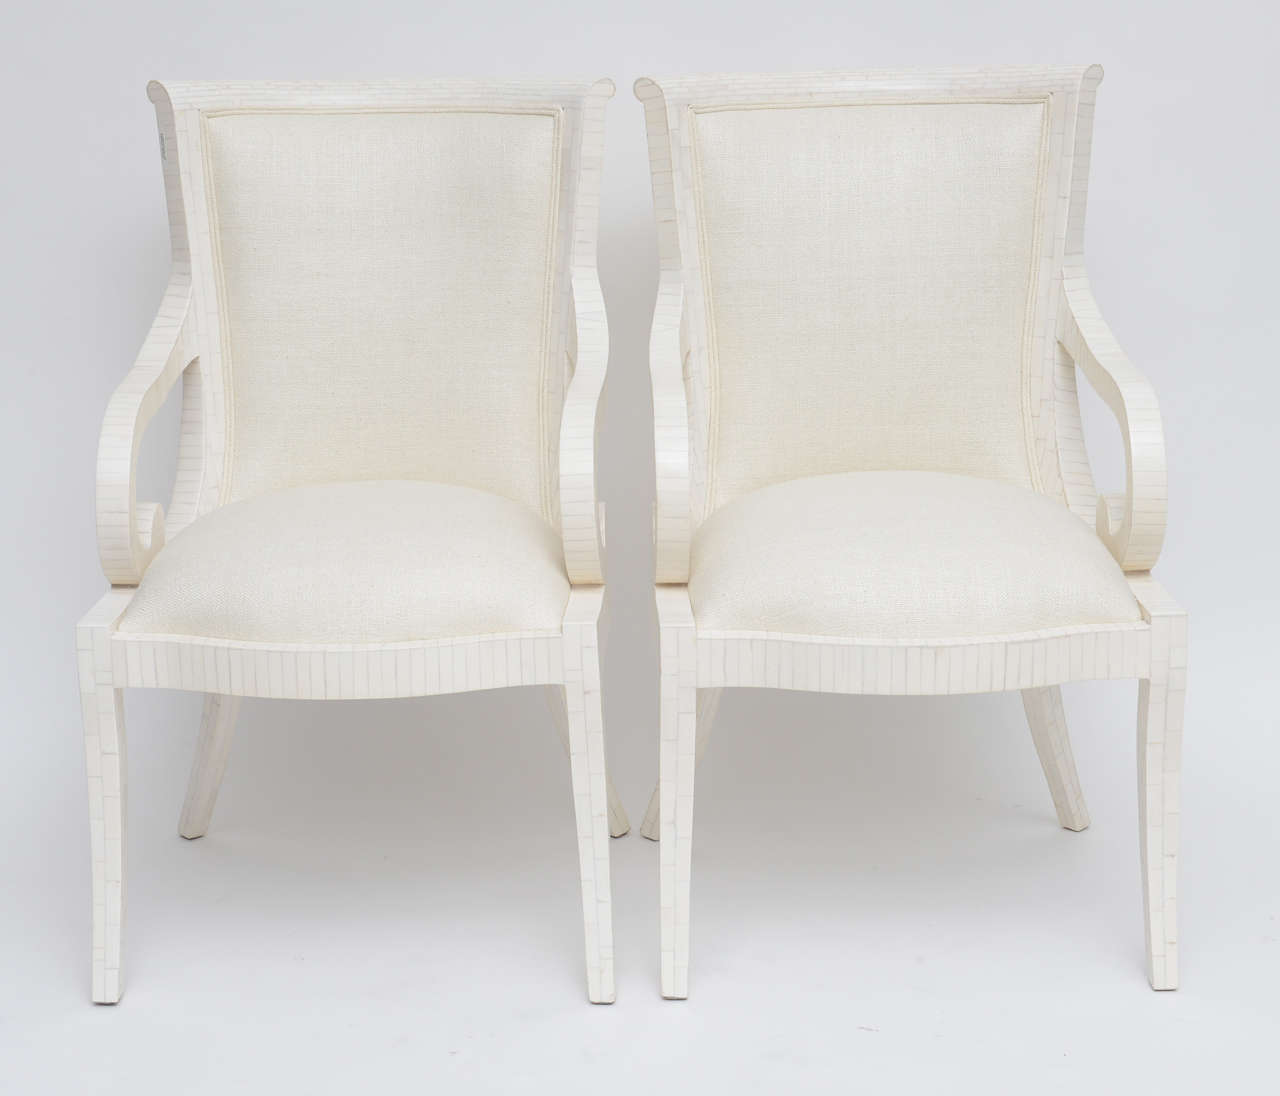 Immaculate, totally restored pair of tessellated bone armchairs by Enrique Garces, upholstered in a soft cream silk.